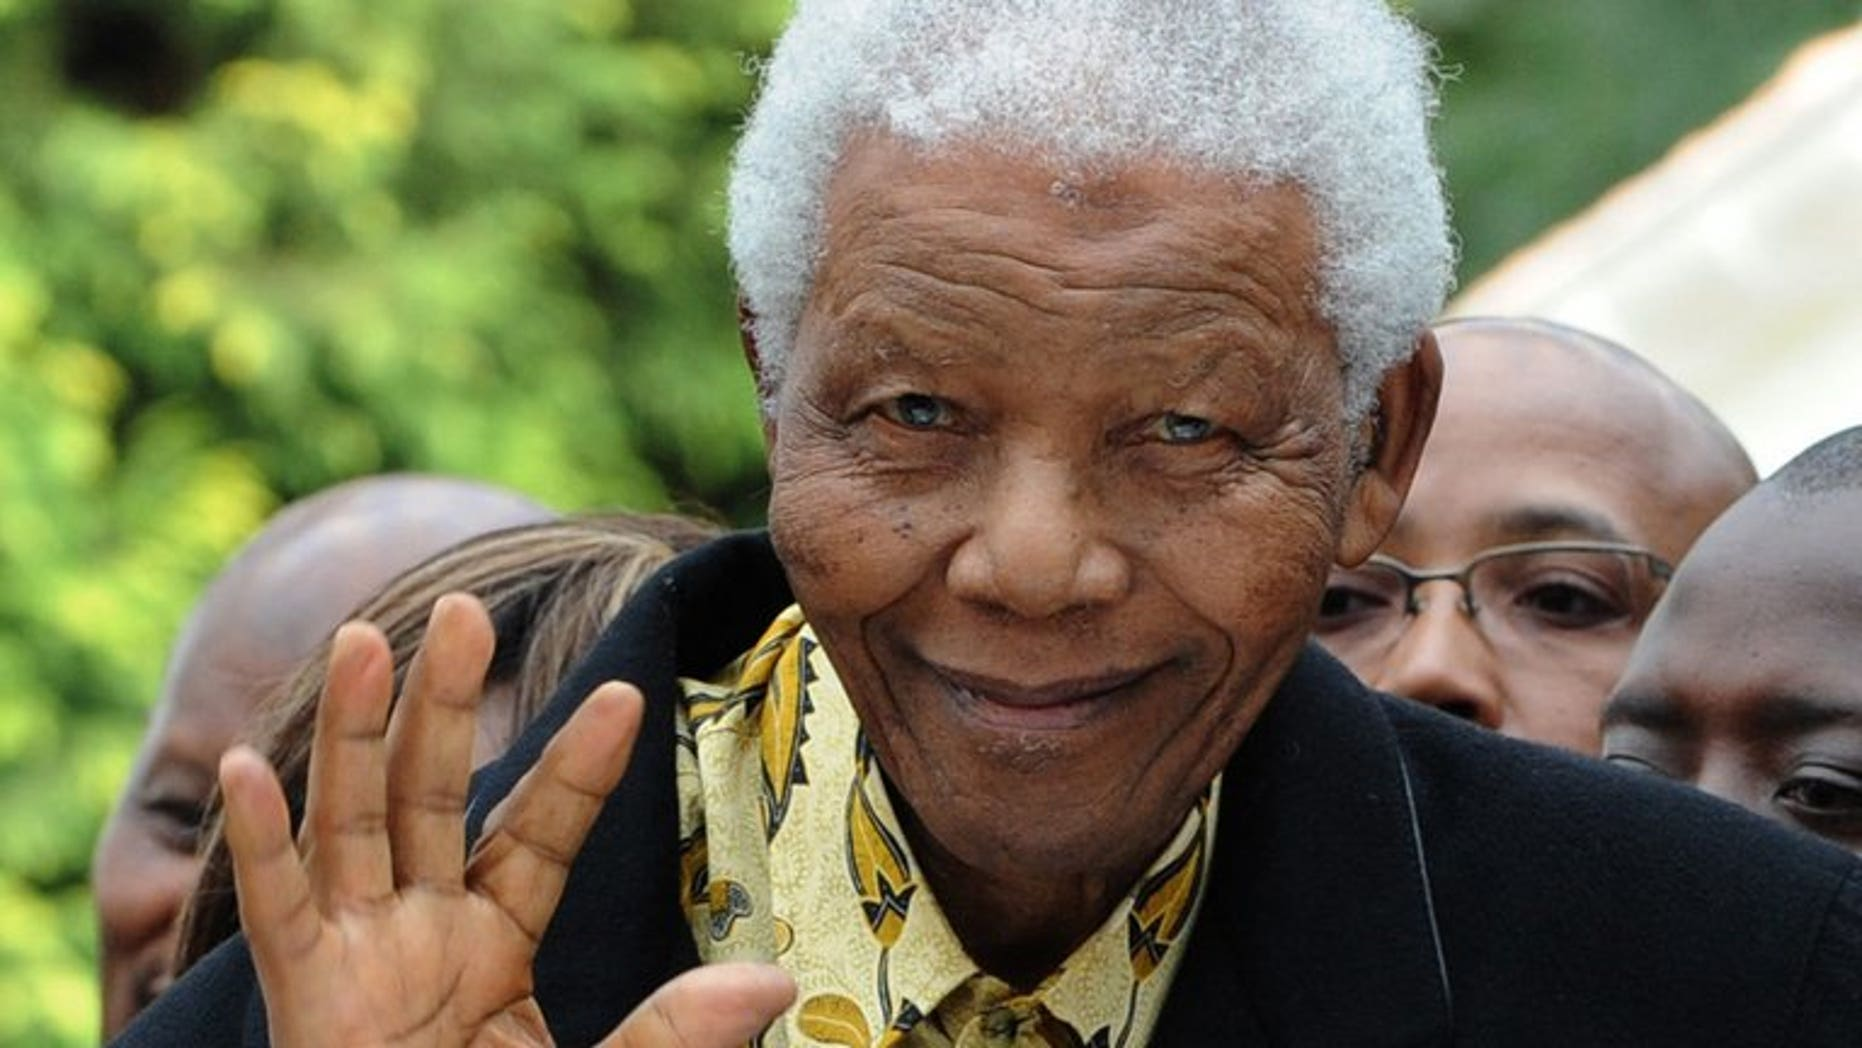 """South African former President Nelson Mandela waves as he arrives at a polling station in Johannesburg on April 22, 2009. Mandela is """"unstable"""" at times but has shown """"great resilience"""" as he remains in a critical condition in hospital, South Africa's presidency said Saturday."""